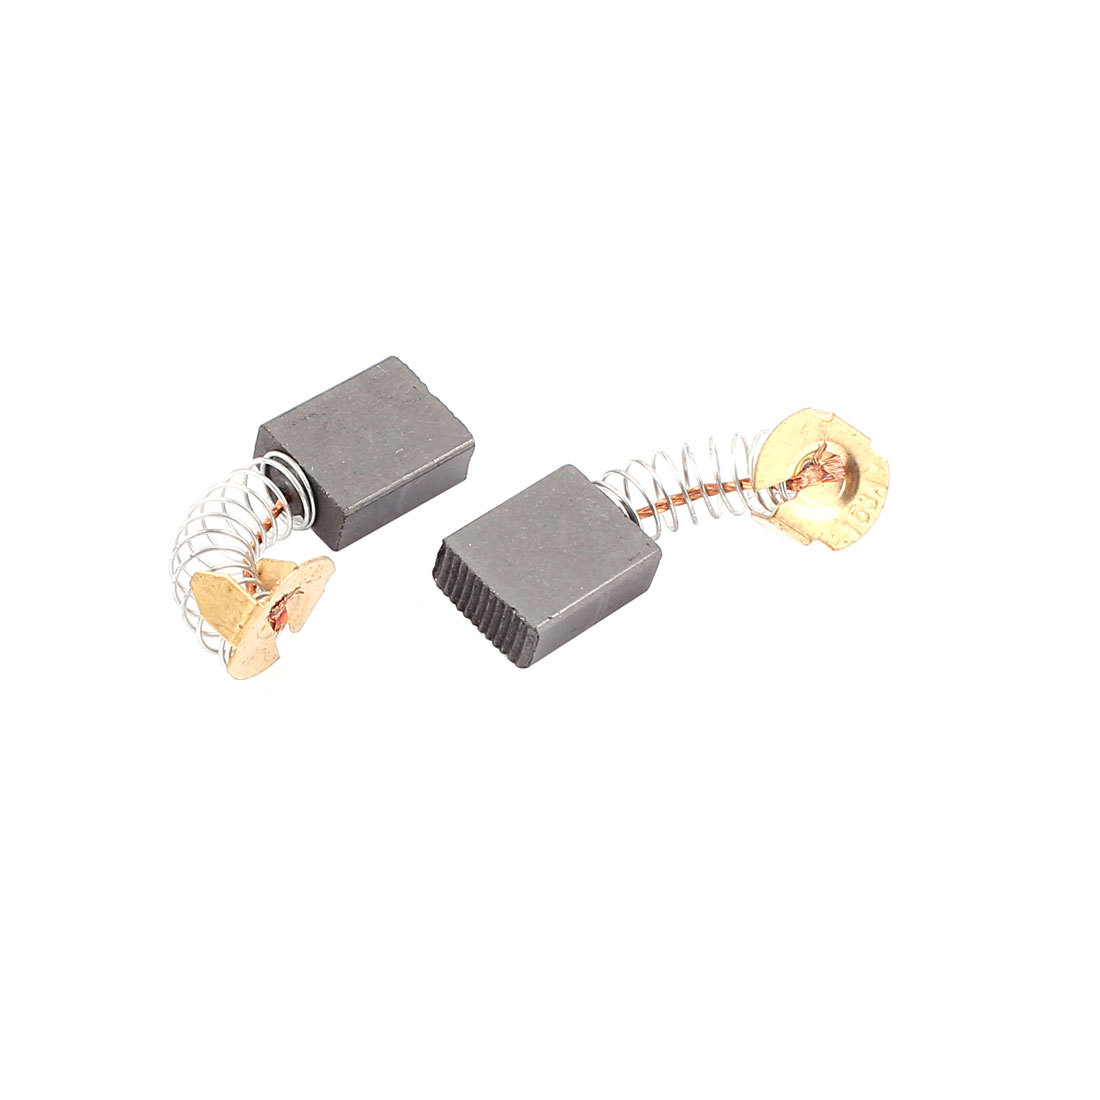 2 Pcs Replacement Electric Motor Carbon Brushes 17mm x 13mm x 6mm for Motors